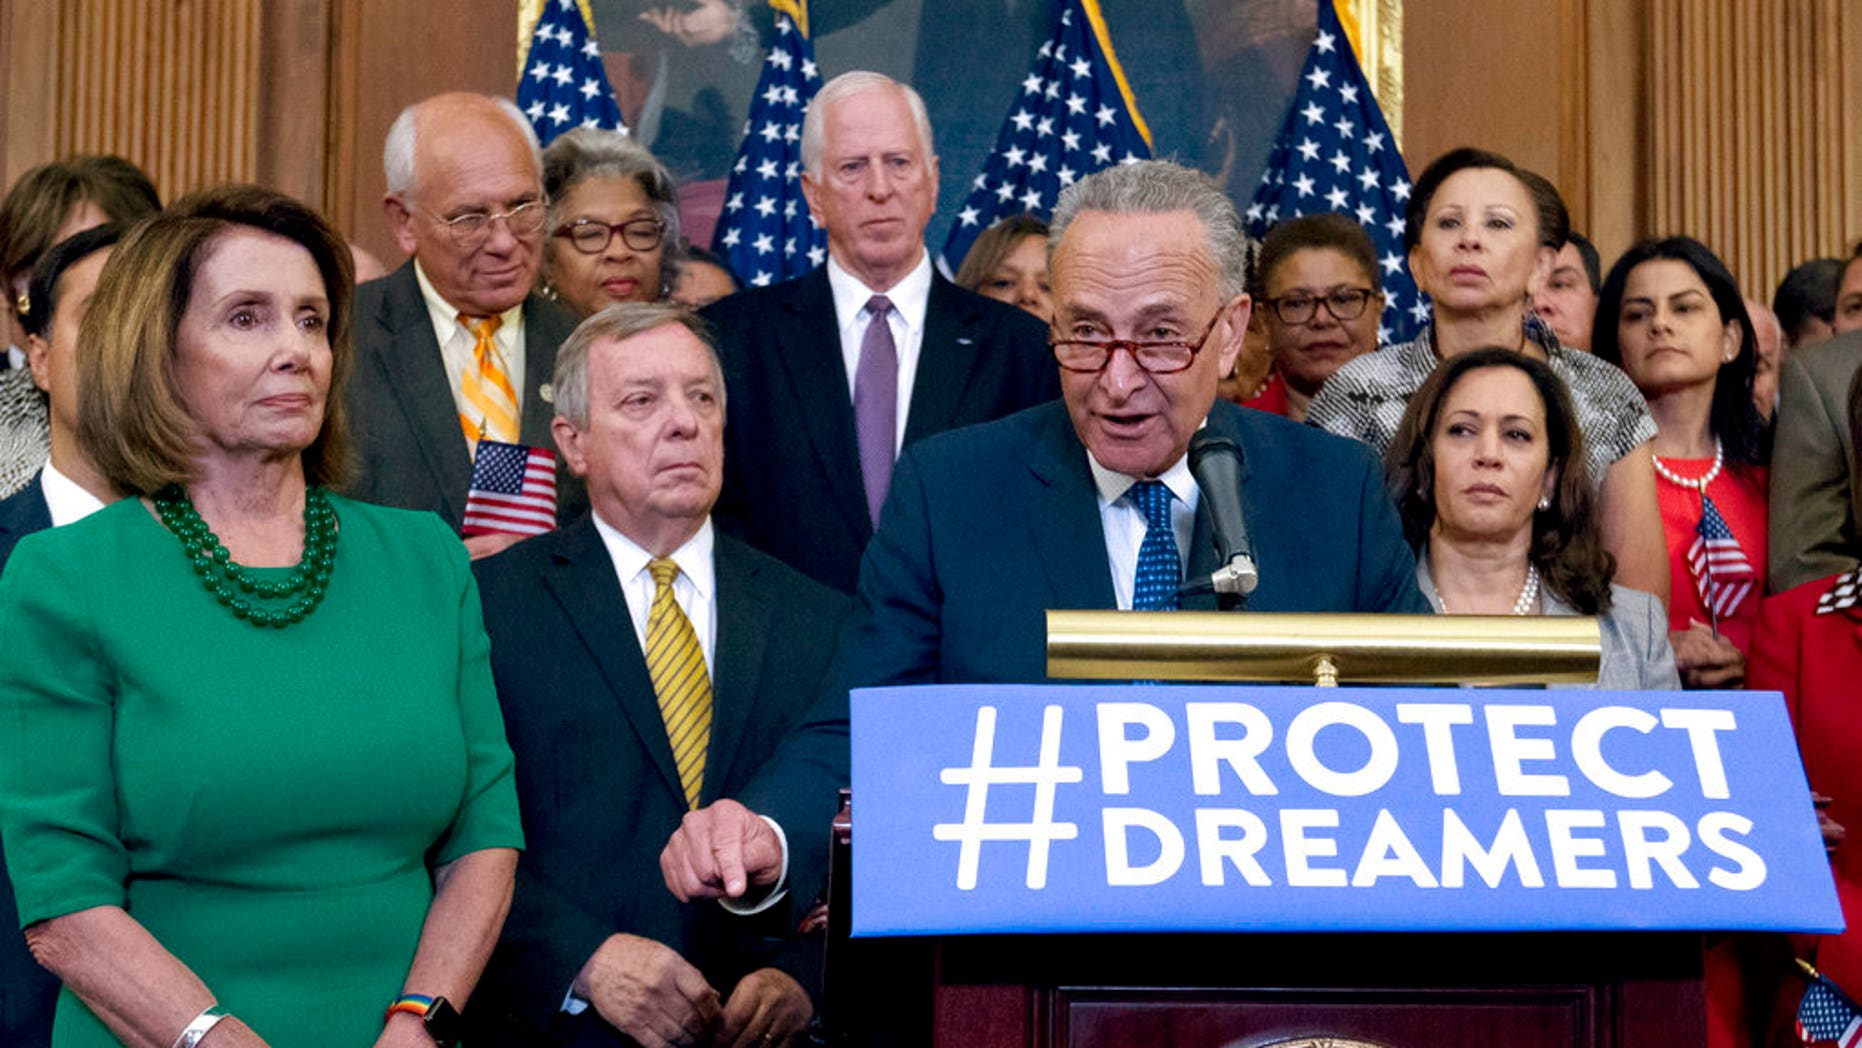 FILE - In this Sept. 6, 2017 file photo, Senate Minority Leader Chuck Schumer of N.Y., accompanied by House Minority Leader Nancy Pelosi of Calif., left, and others members of the House and Senate Democrats, speaks during a news conference on Capitol Hill in Washington.   It's beginning to look like Congress' election-year battle over immigration could end up in stalemate or a narrowly focused bill. The kind of broader measure that President Donald Trump has proposed is running into trouble. The reasons: Deep gaps between the two parties, internal divisions particularly among Republicans and political incentives that might leave each side content with a minimal compromise or even nothing at all. ( AP Photo/Jose Luis Magana)